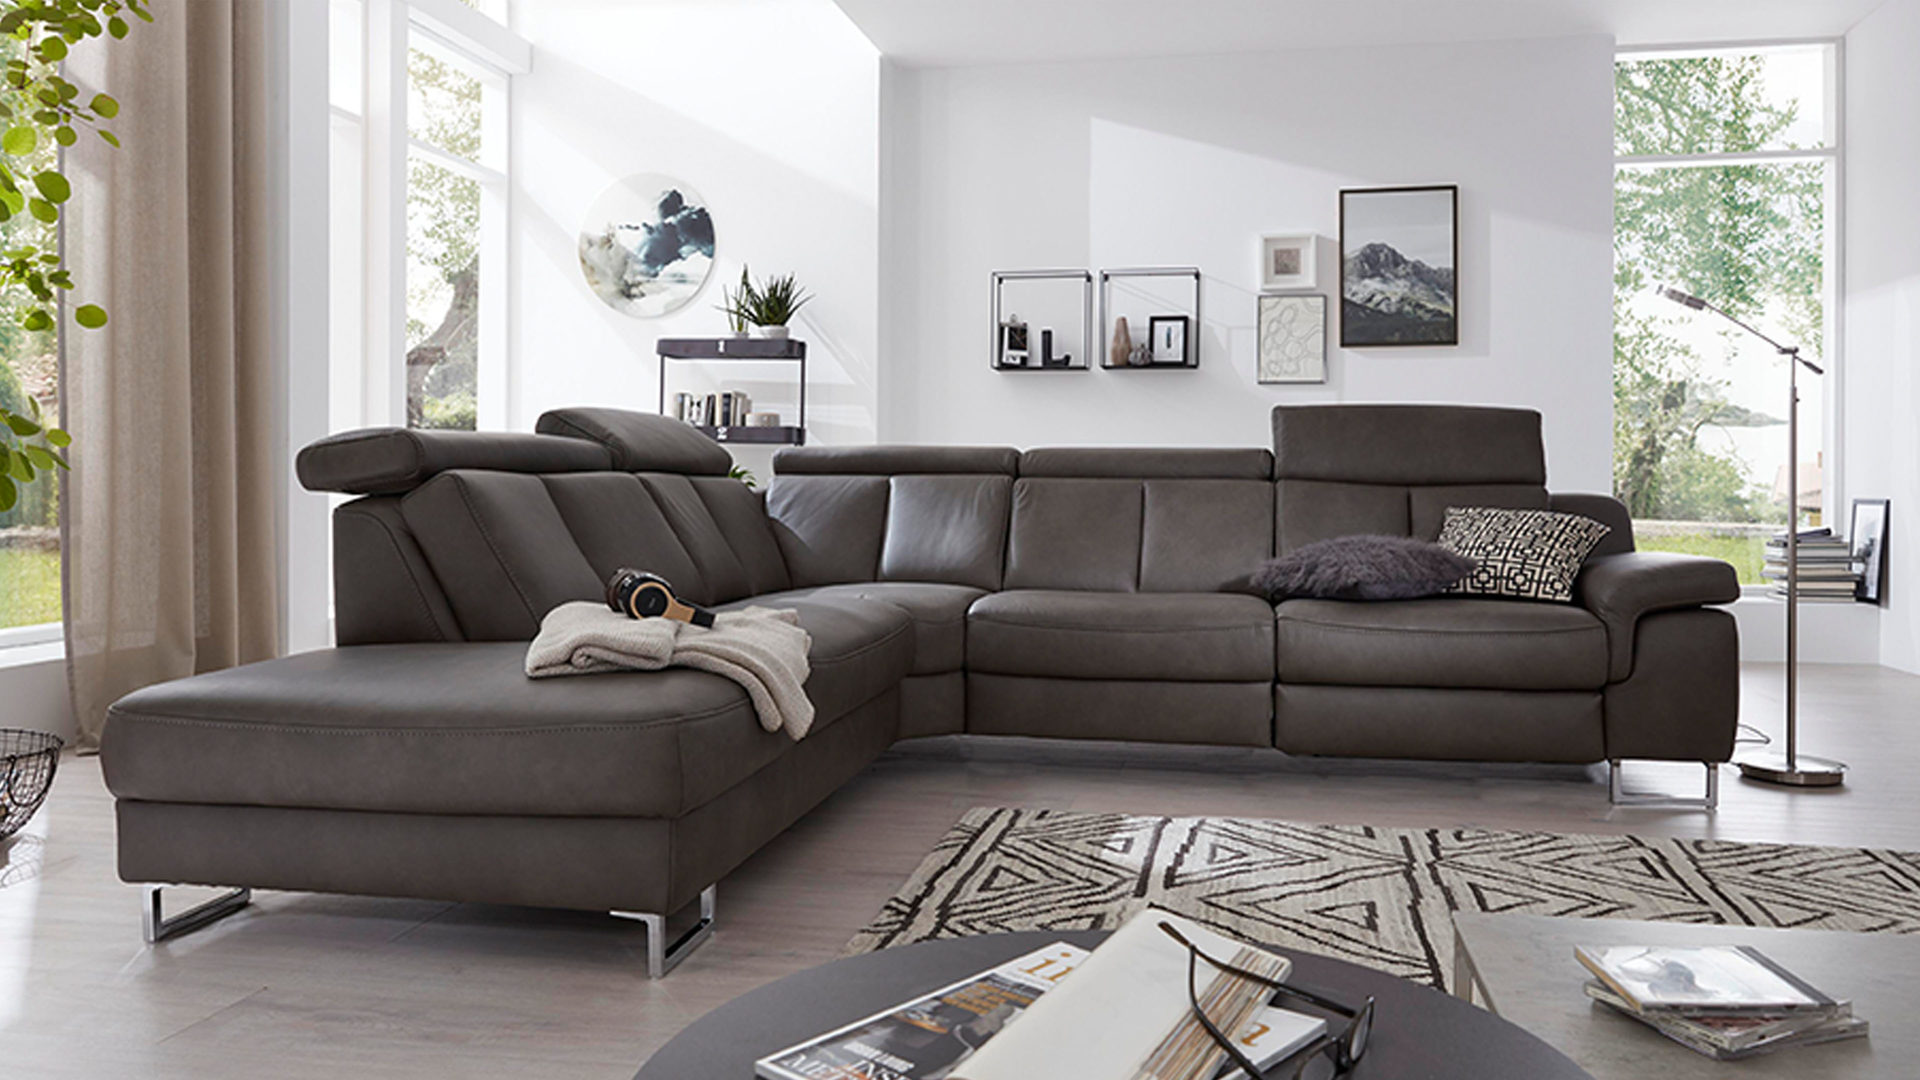 Ecksofa Interliving aus Leder in Grau Interliving Sofa Serie 4050 – Eckkombination graues LongLife-Leder Cloudy Grey & Chromfüße – Schenkelmaß ca. 261 x 300 cm